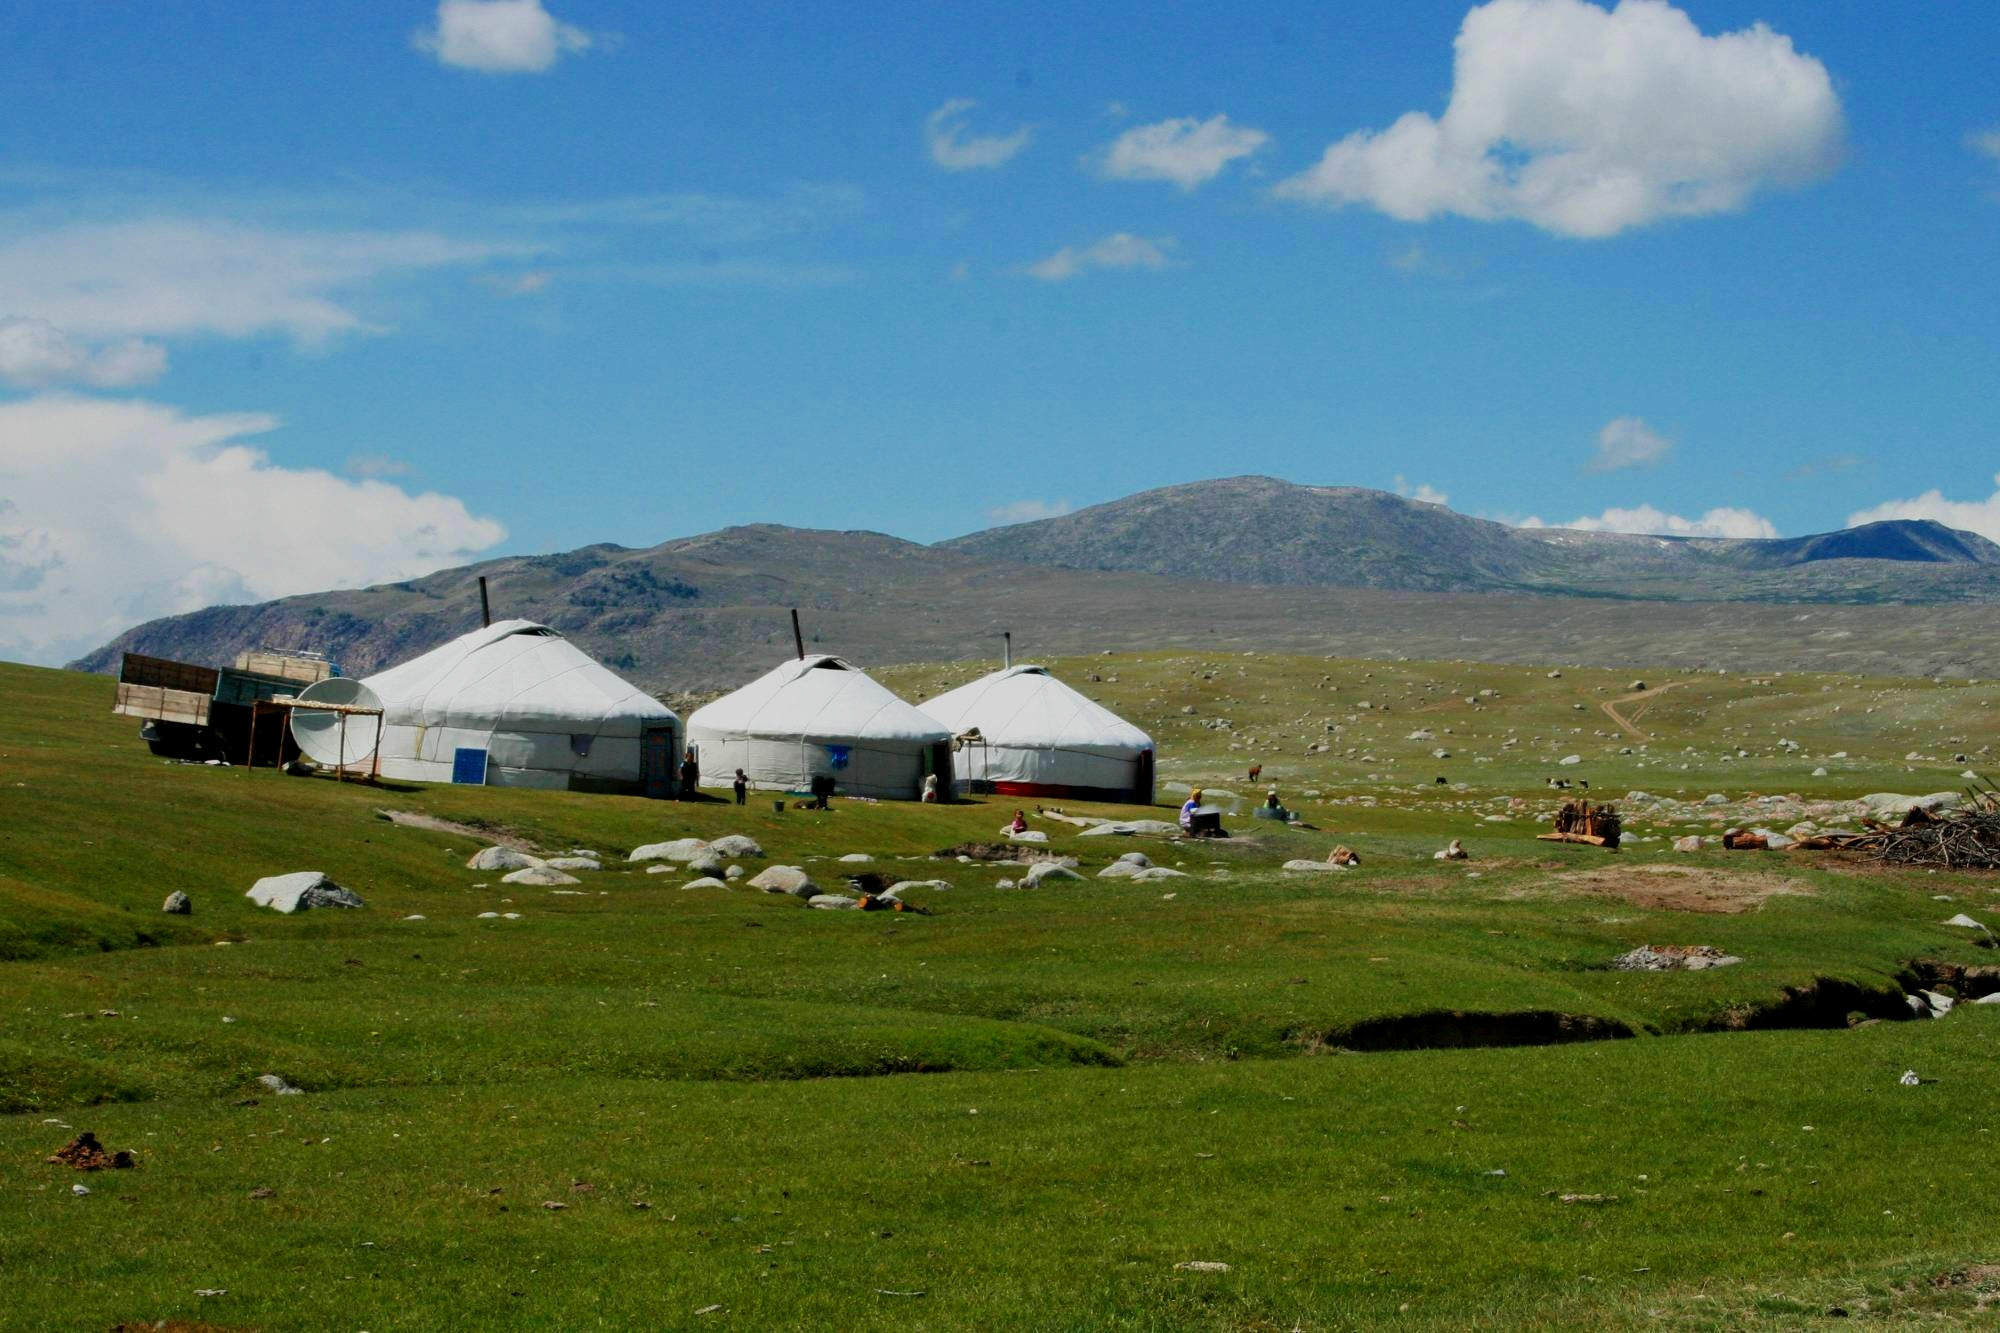 North. - In the North, you can experience what it's like living the life of a true nomad near the Gobi desert (Mongolia). The weather often ranges from 13C to -20C!